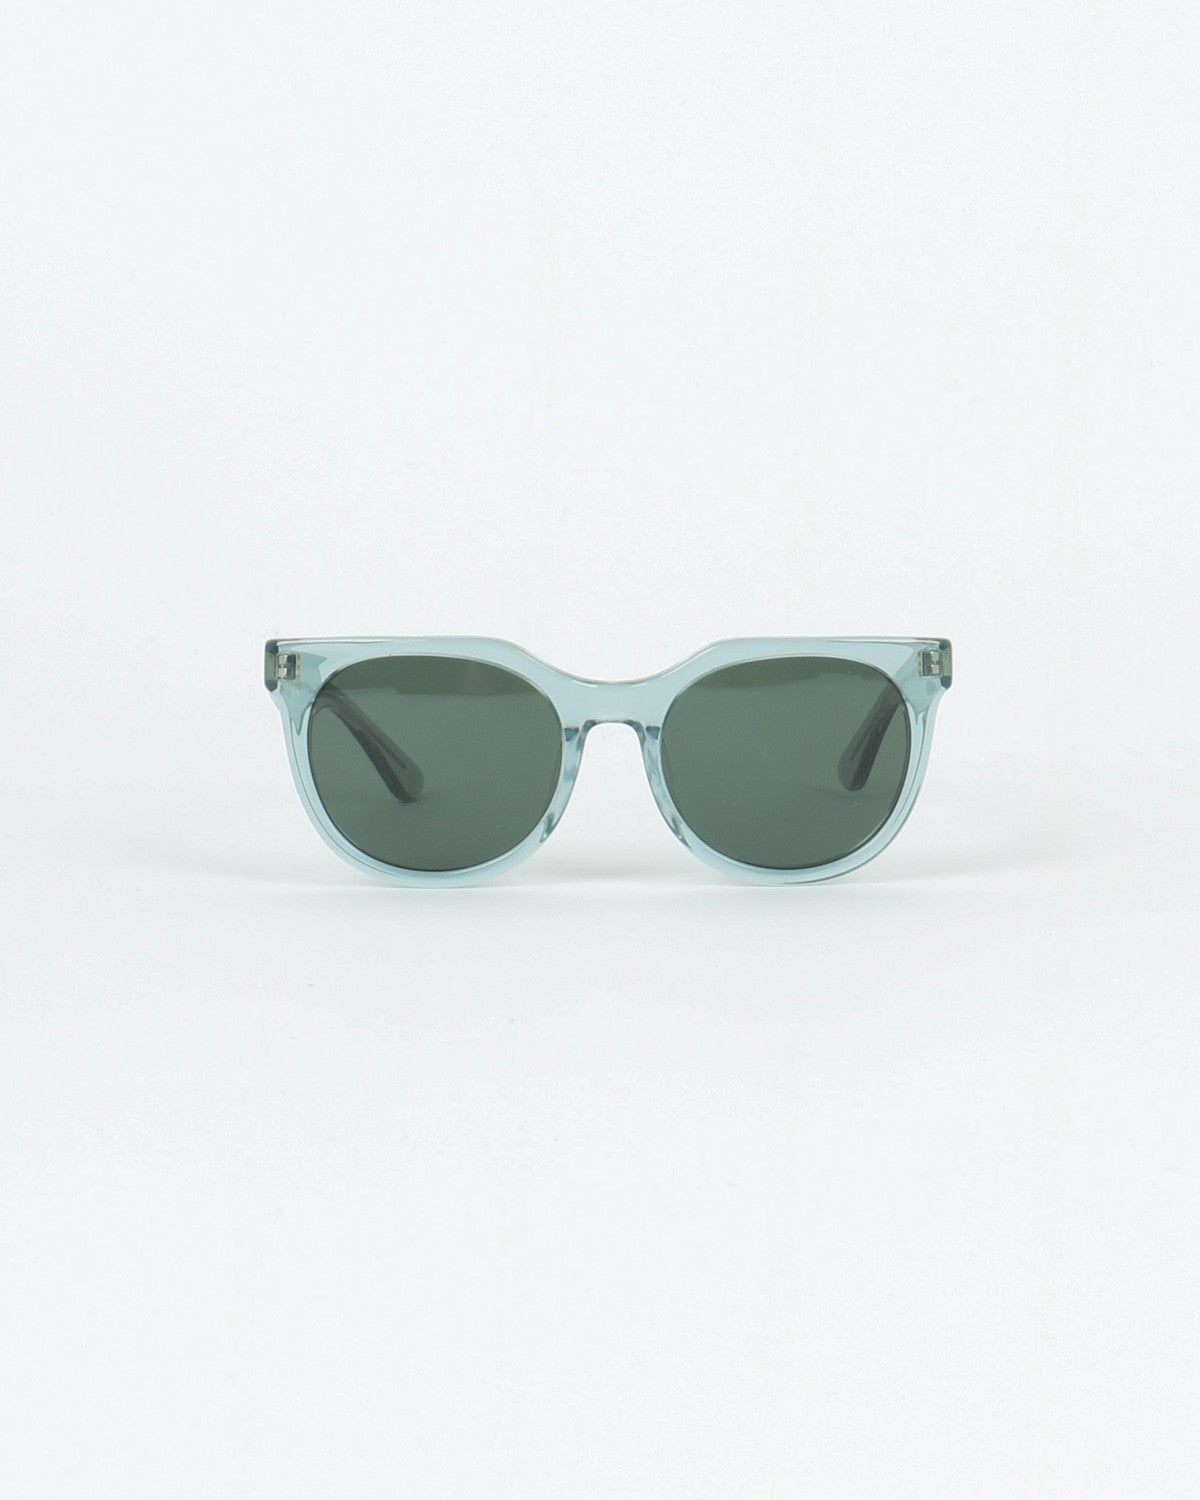 han kjobenhavn_paul senior_sunglasses_grey transparent_view_3_4